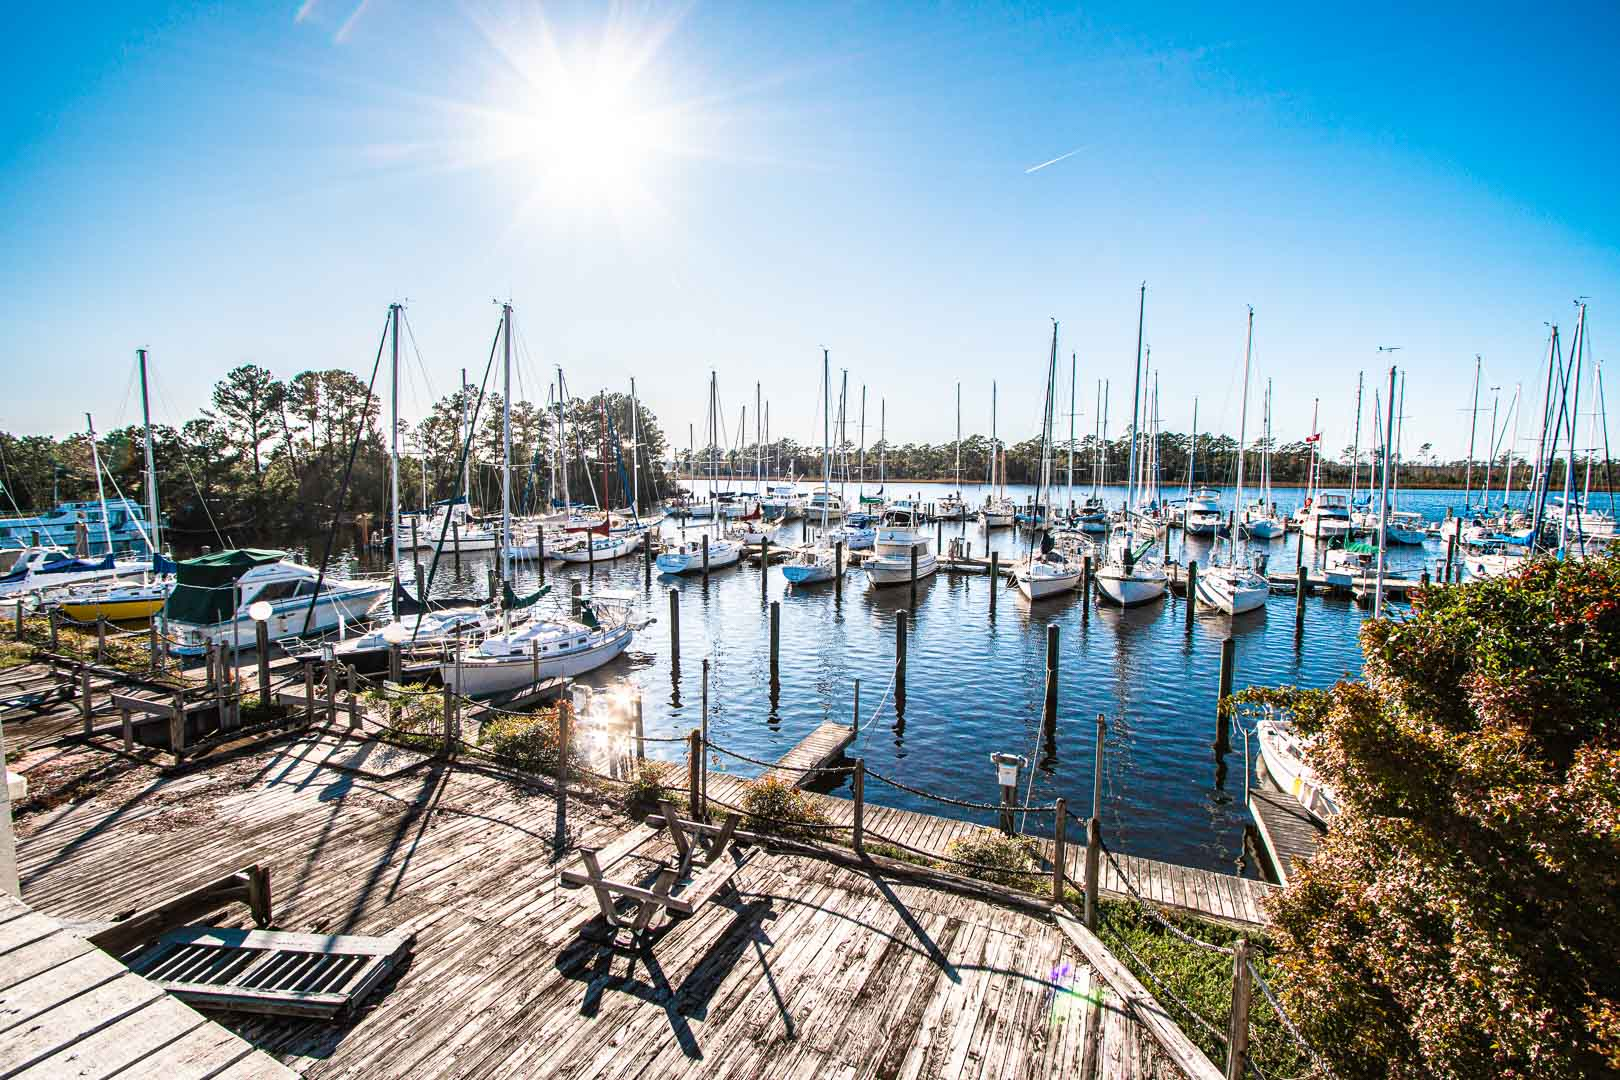 A peaceful view of the boat dock at VRI's Waterwood Townhomes in New Bern, North Carolina.